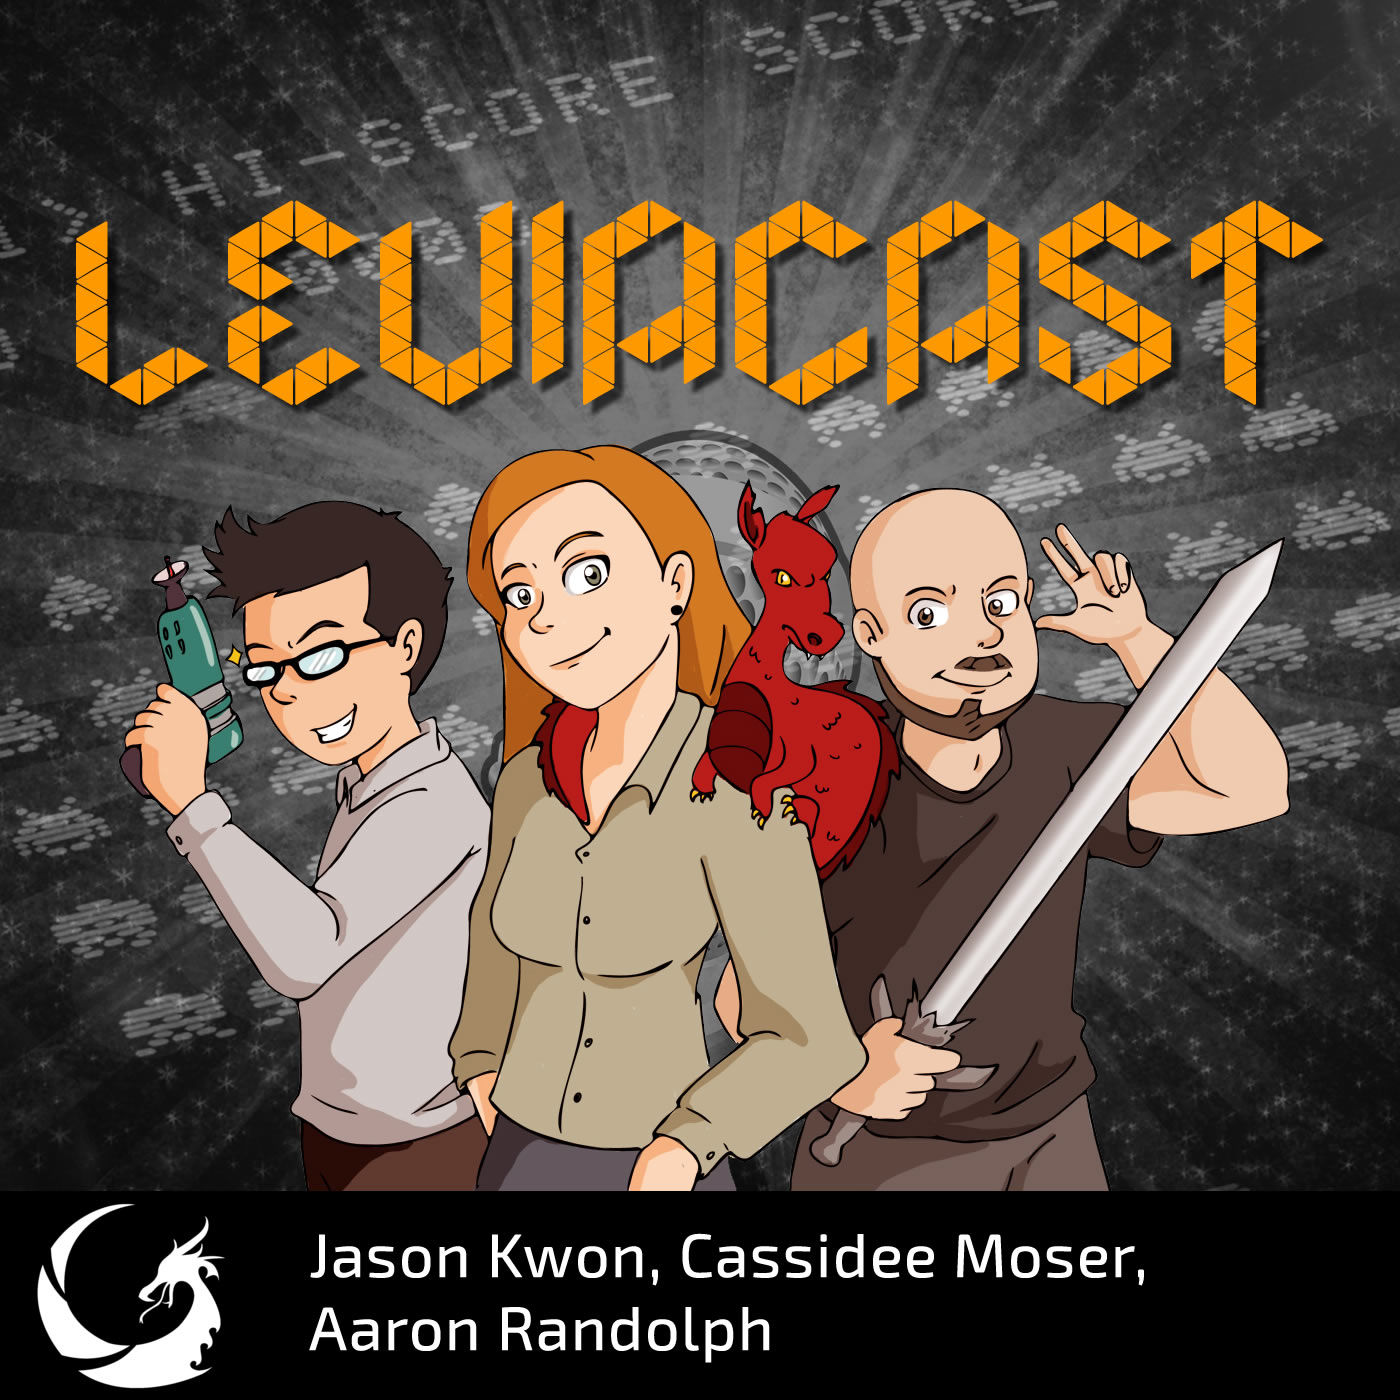 Leviacast Ep. 74: Gamescom 2014 and Our Top 3 Dream Crossovers